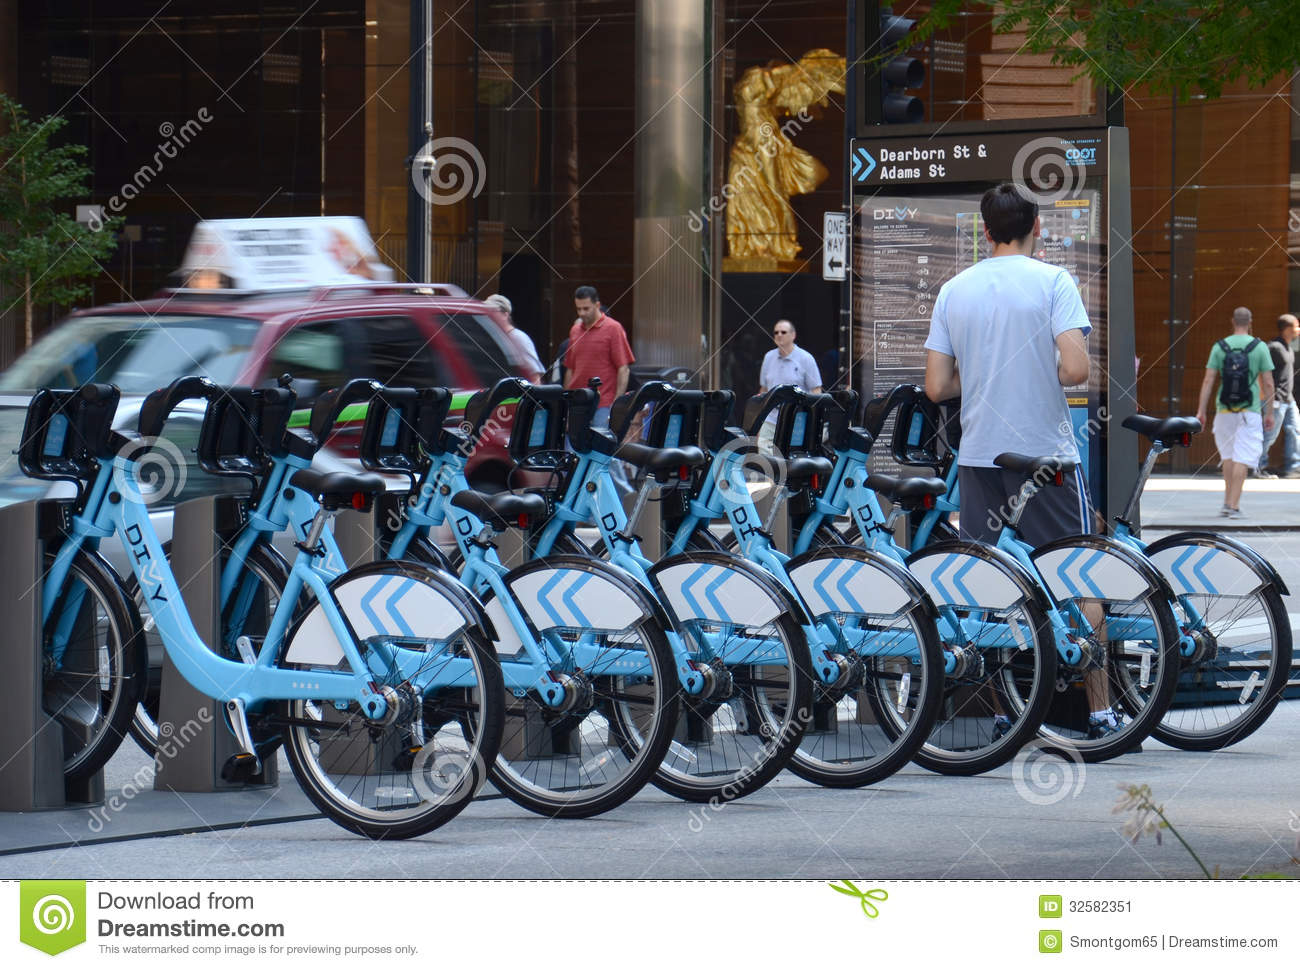 Bikes To Rent In Chicago Divvy bike rental station in